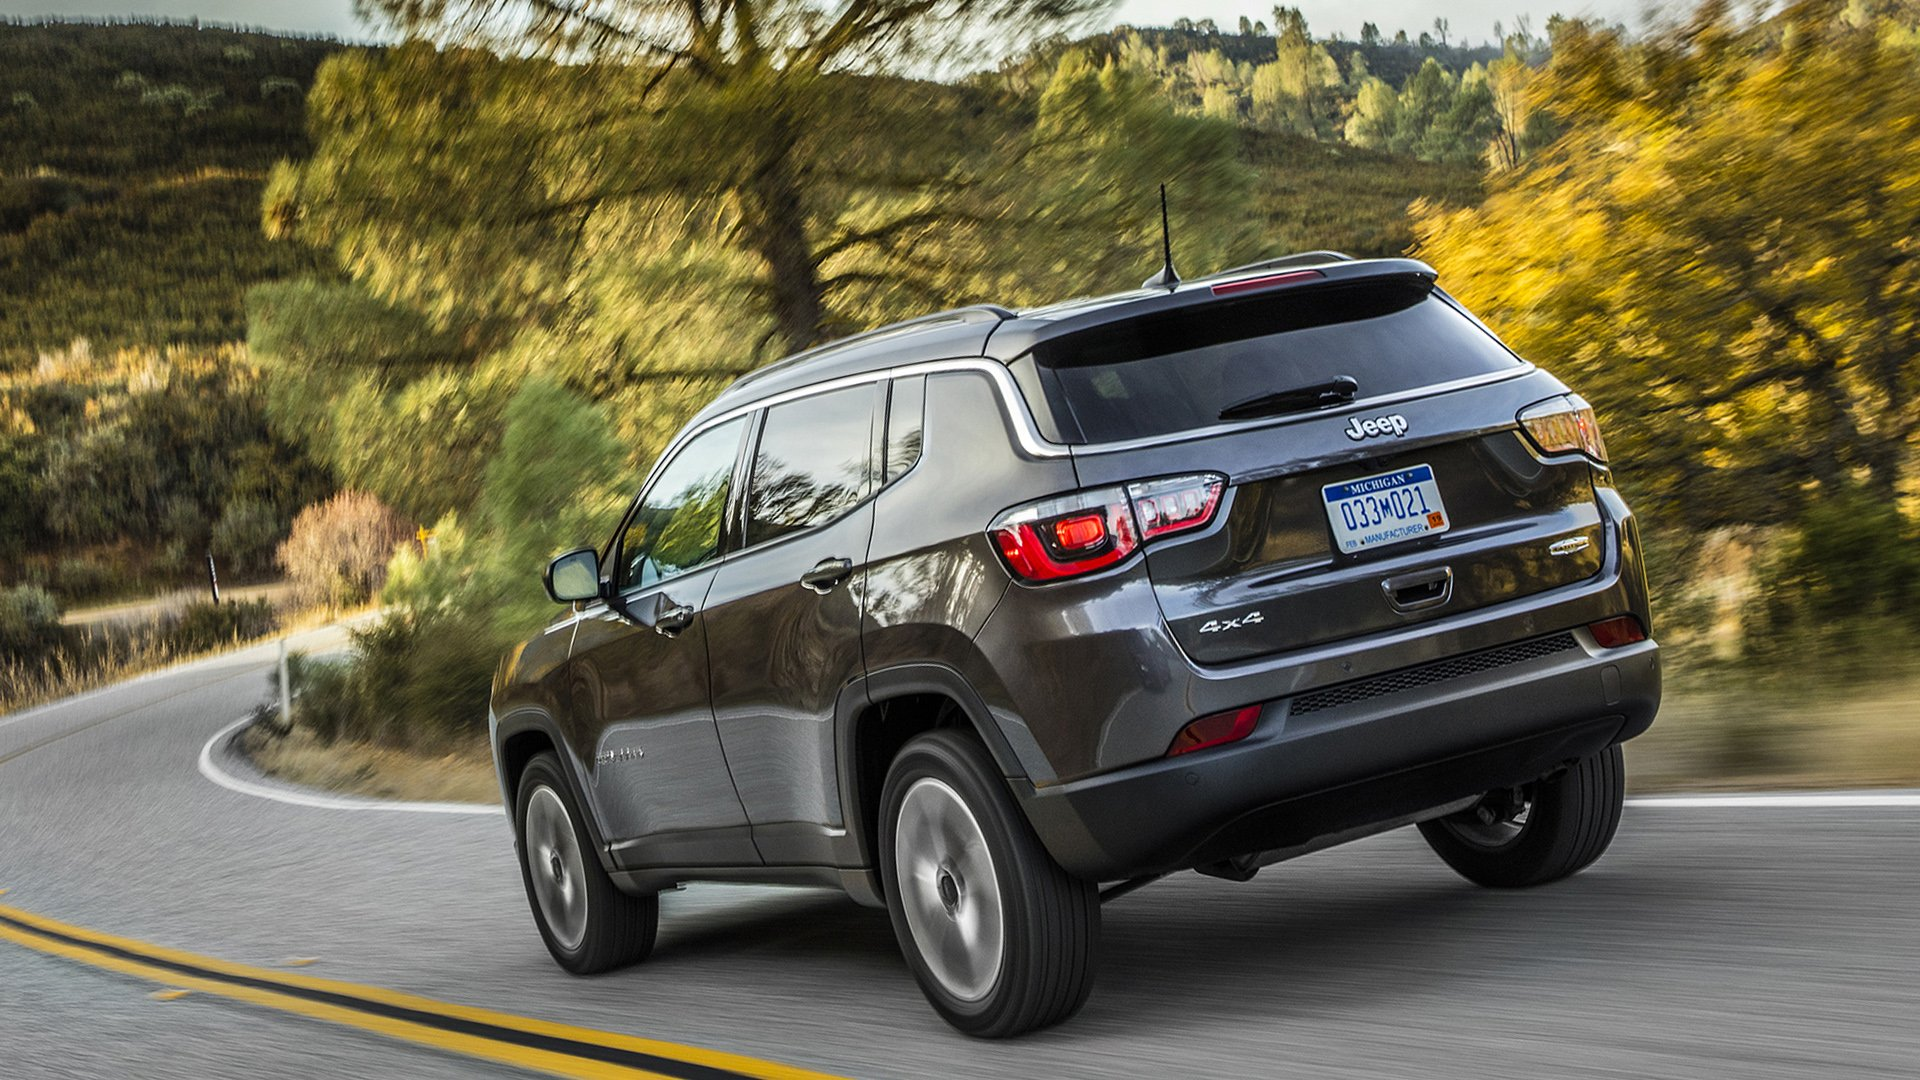 Jeep Compass Images HD